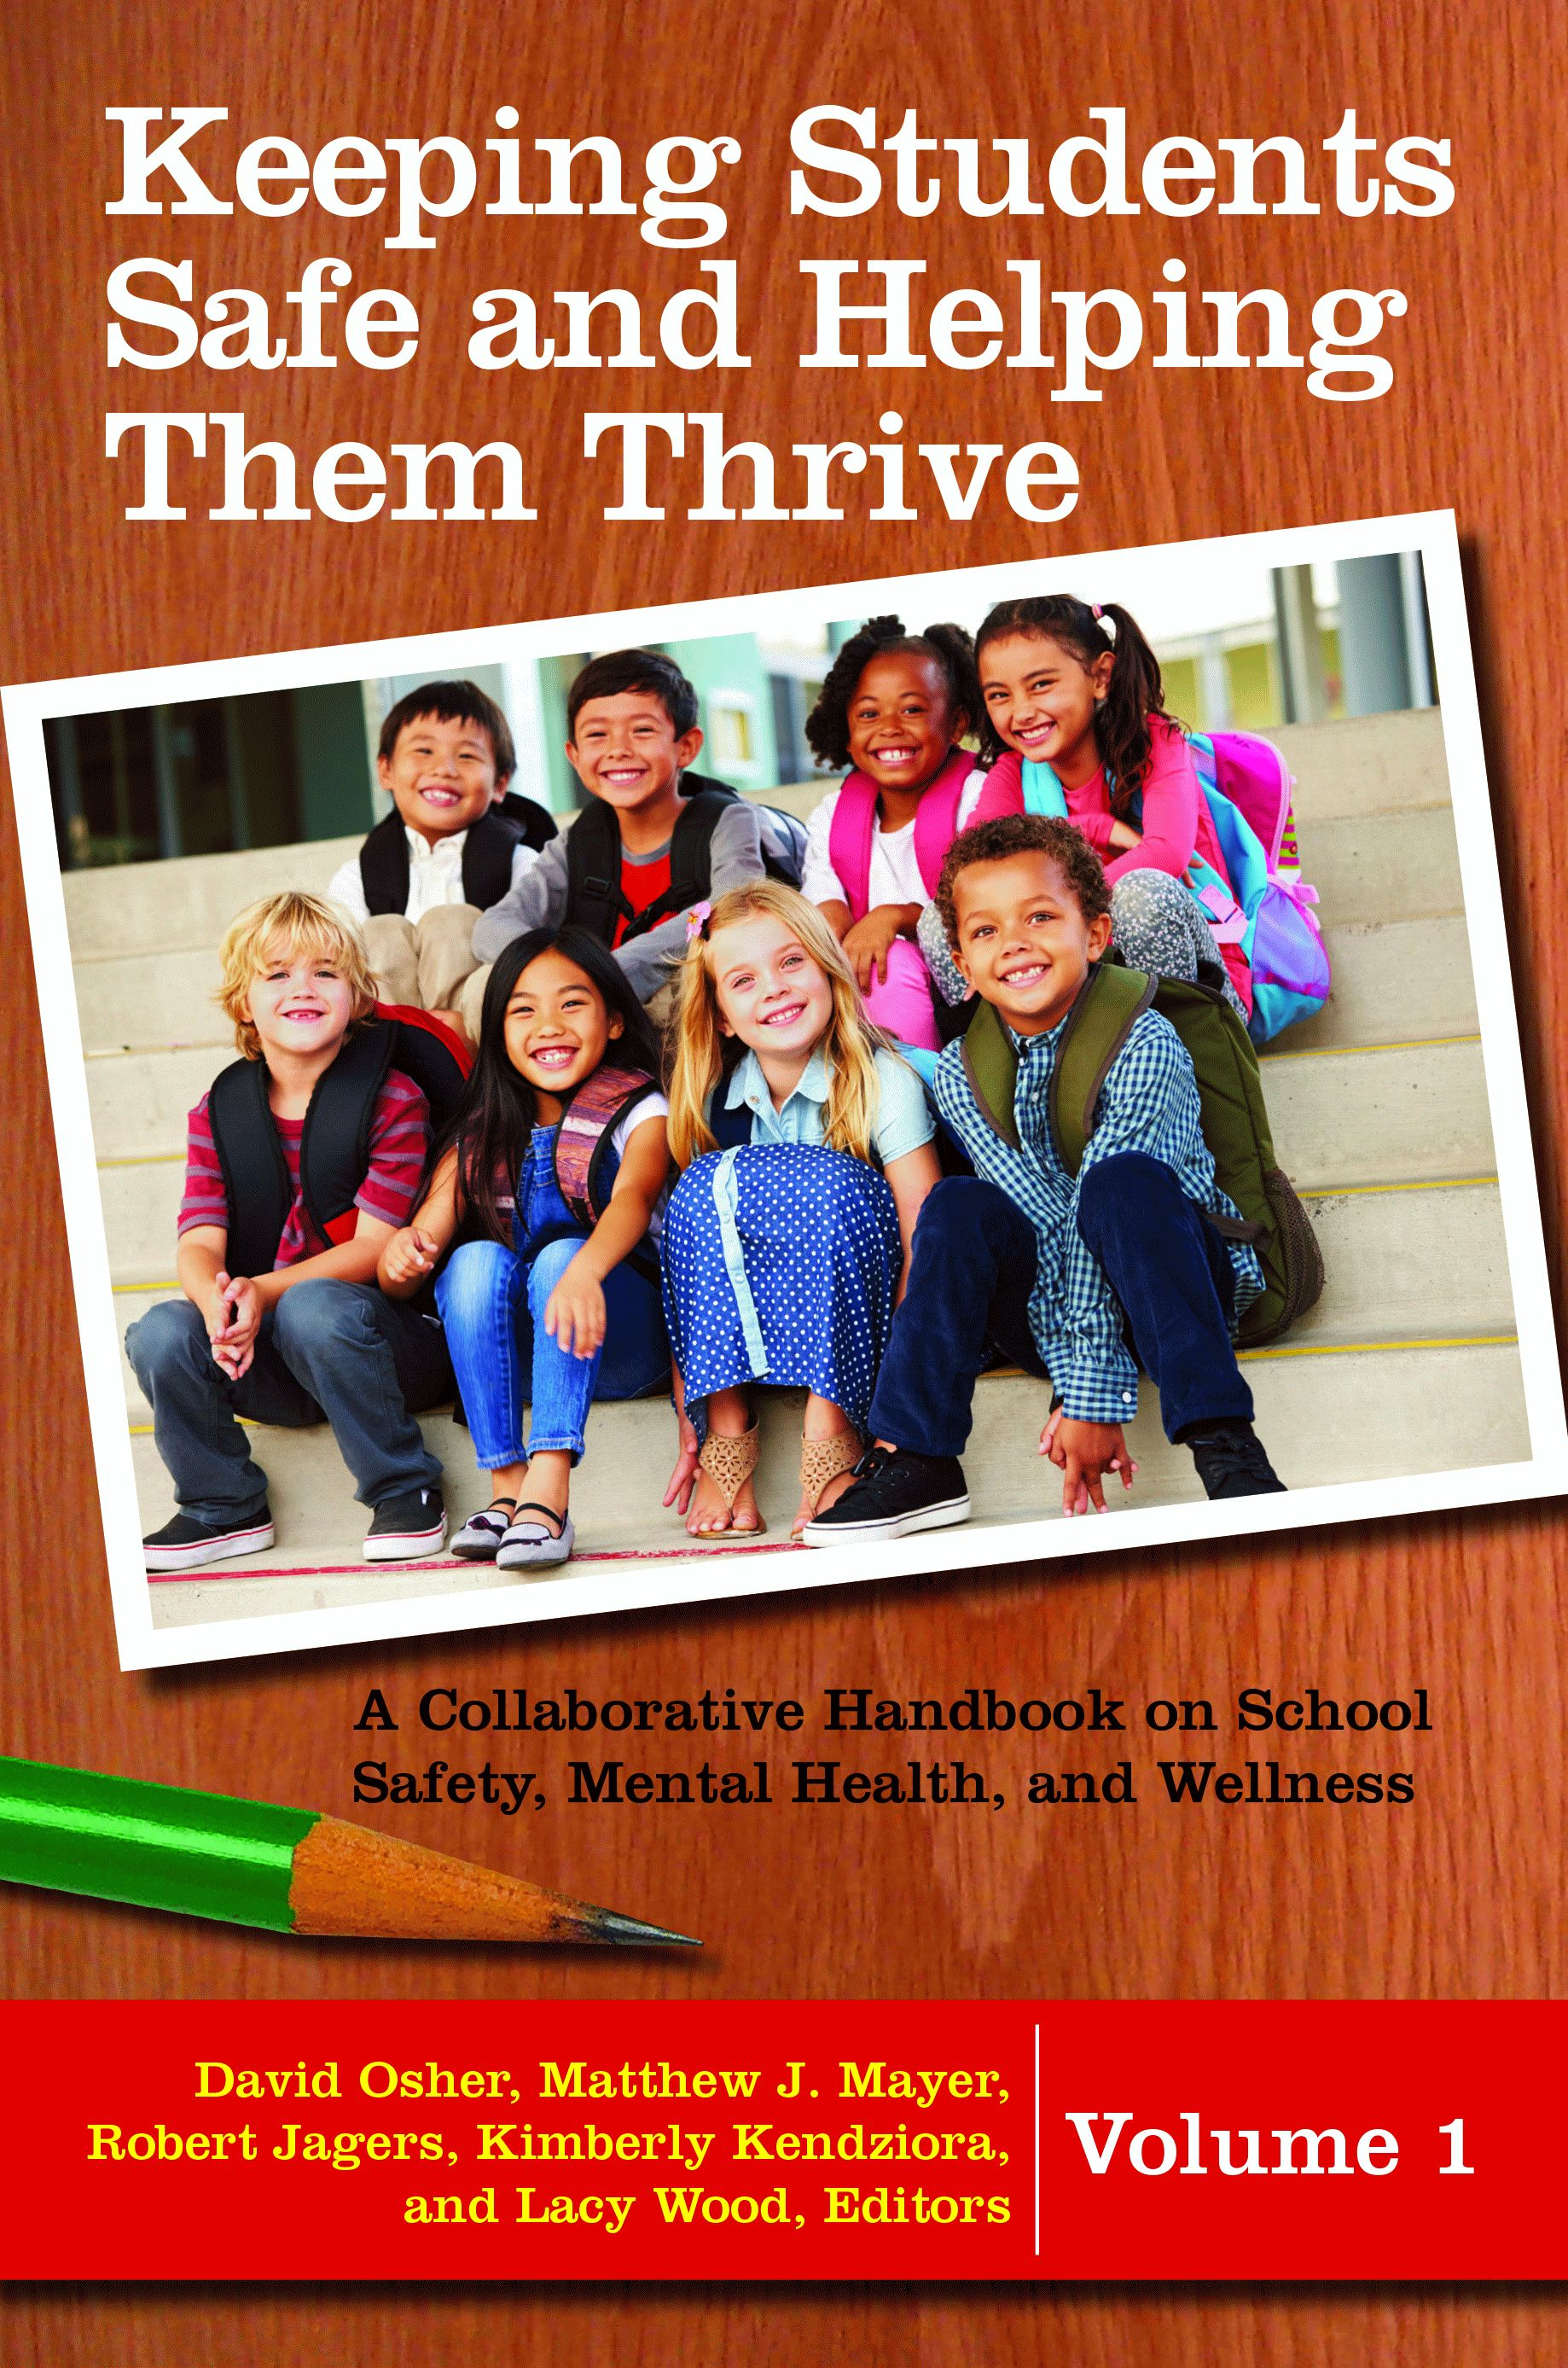 Keeping Students Safe and Helping Them Thrive: A Collaborative Handbook on School Safety, Mental Health, and Wellness (2 volumes)